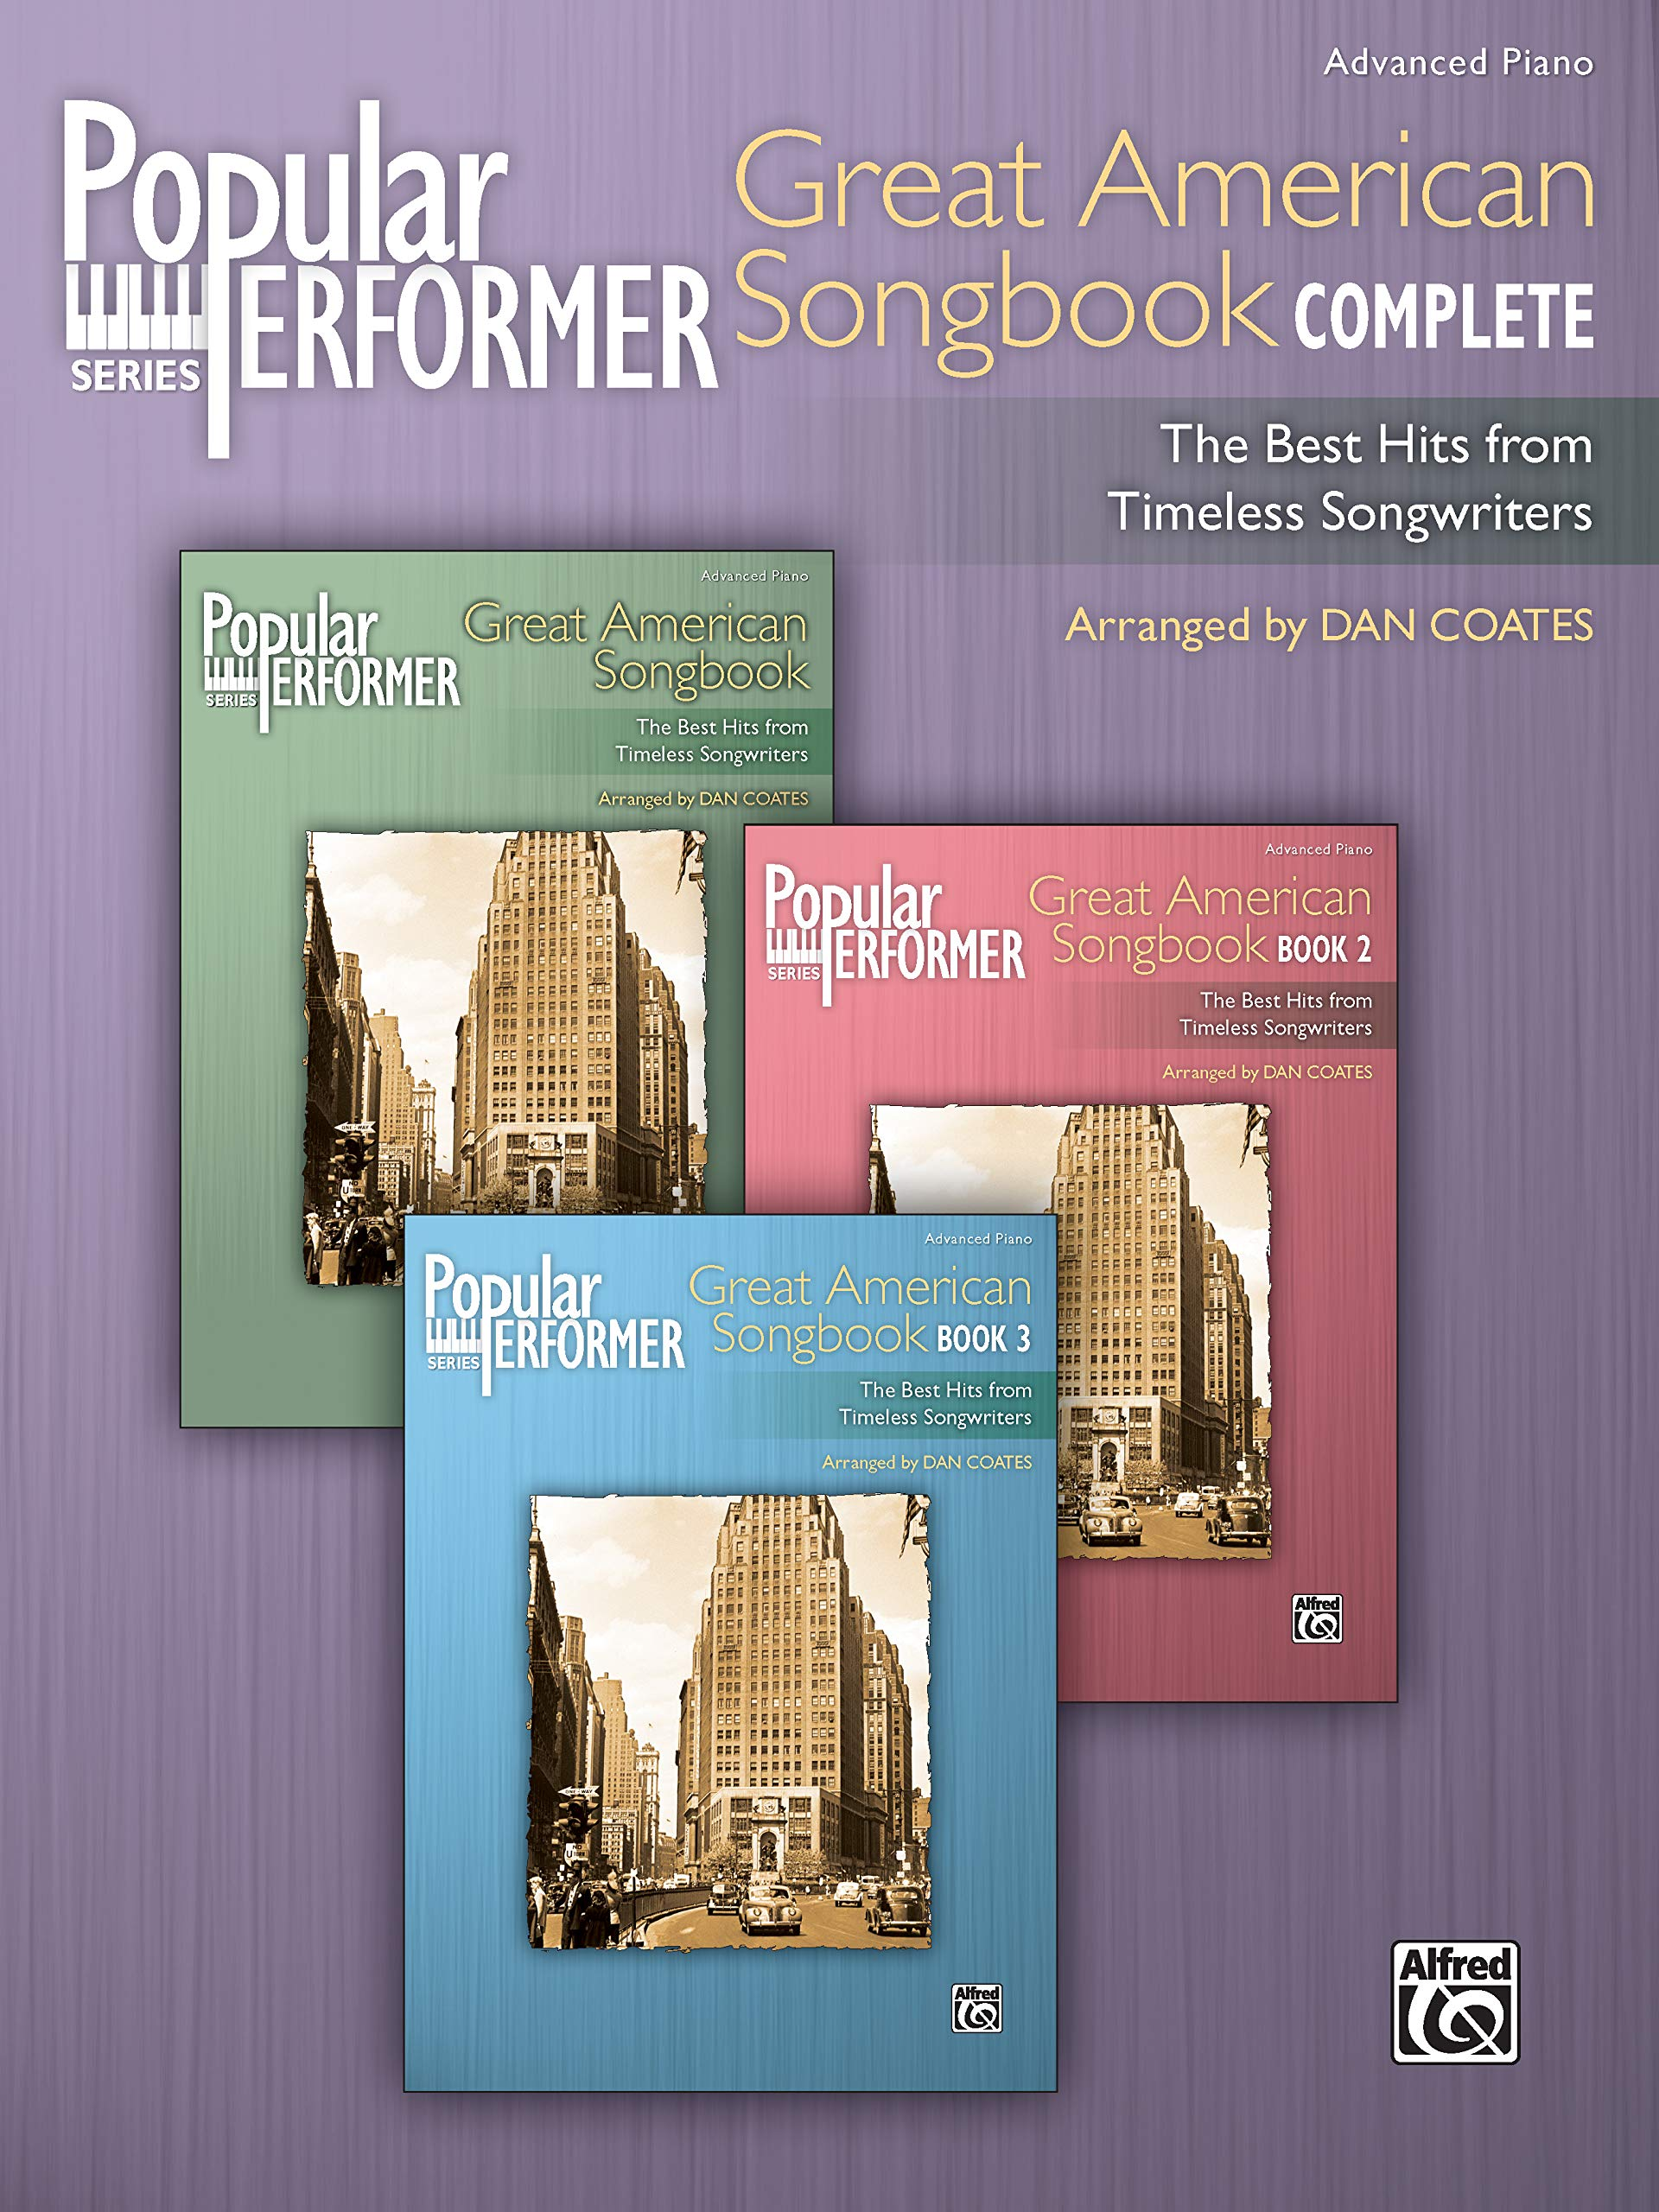 Popular Performer    Great American Songbook Complete  The Best Hits From Timeless Songwriters